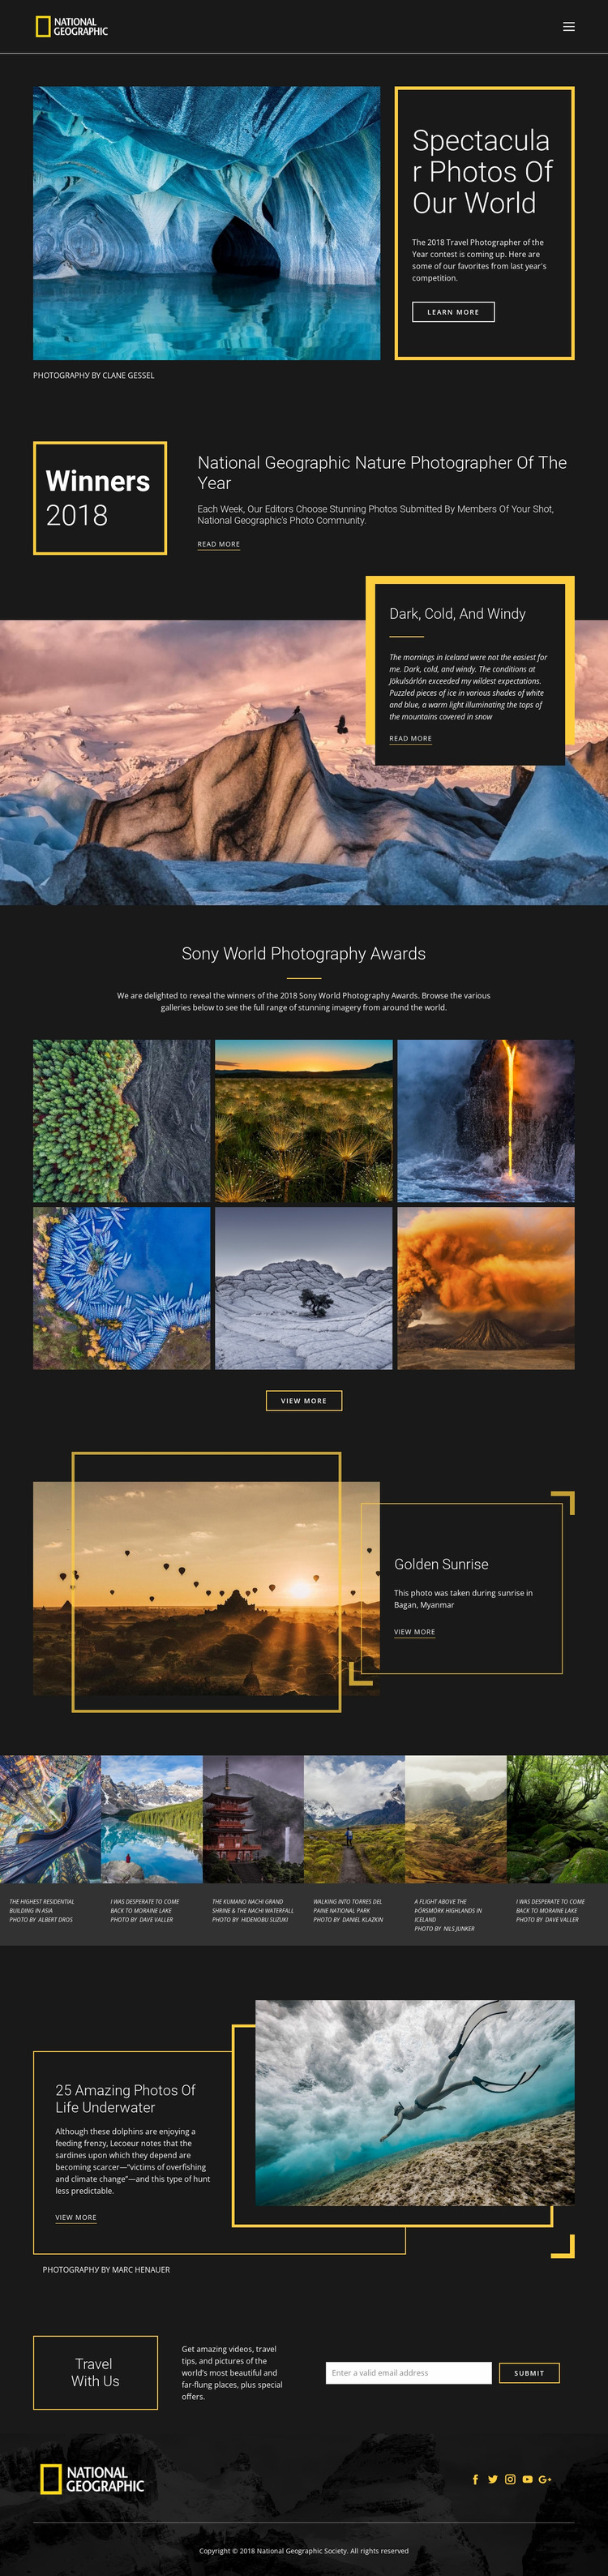 Pictures of nature Website Mockup